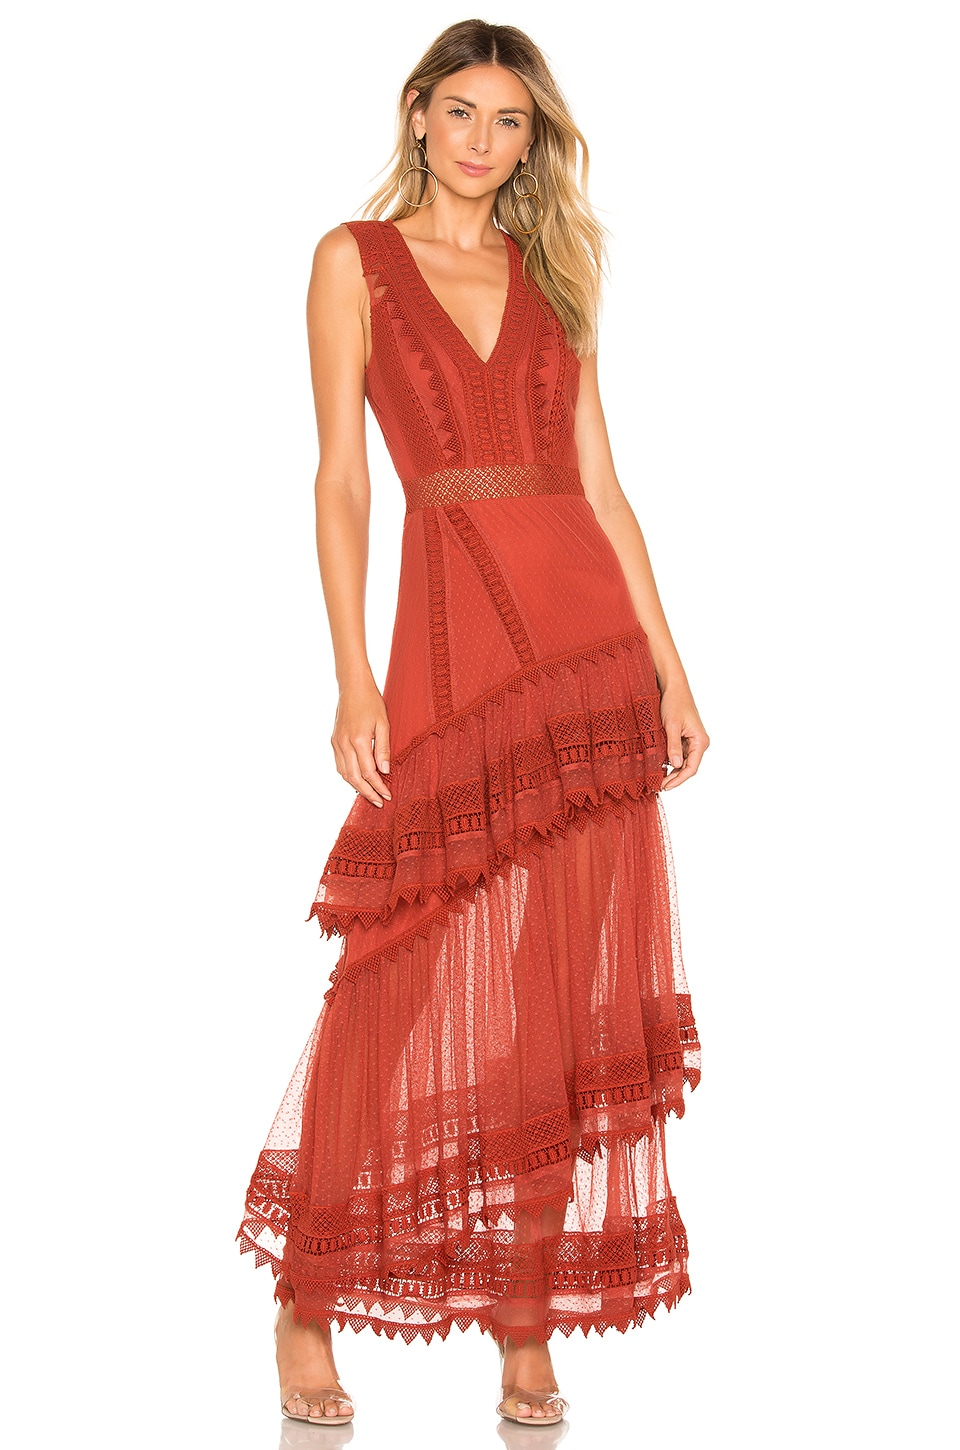 House of Harlow 1960 X REVOLVE Valence Dress in Red